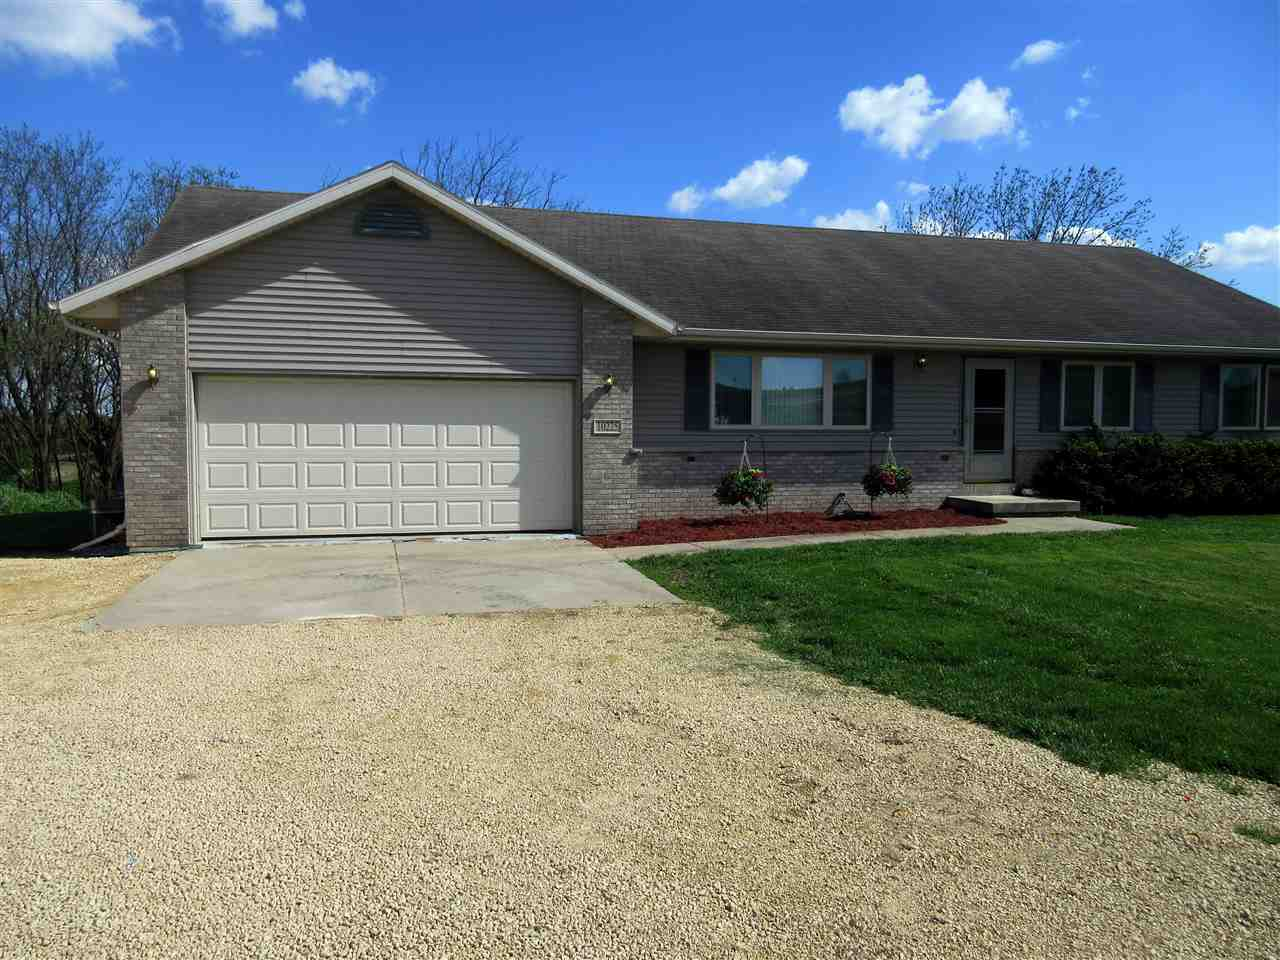 10225 Spring Valley Dr, Perry, WI 53577